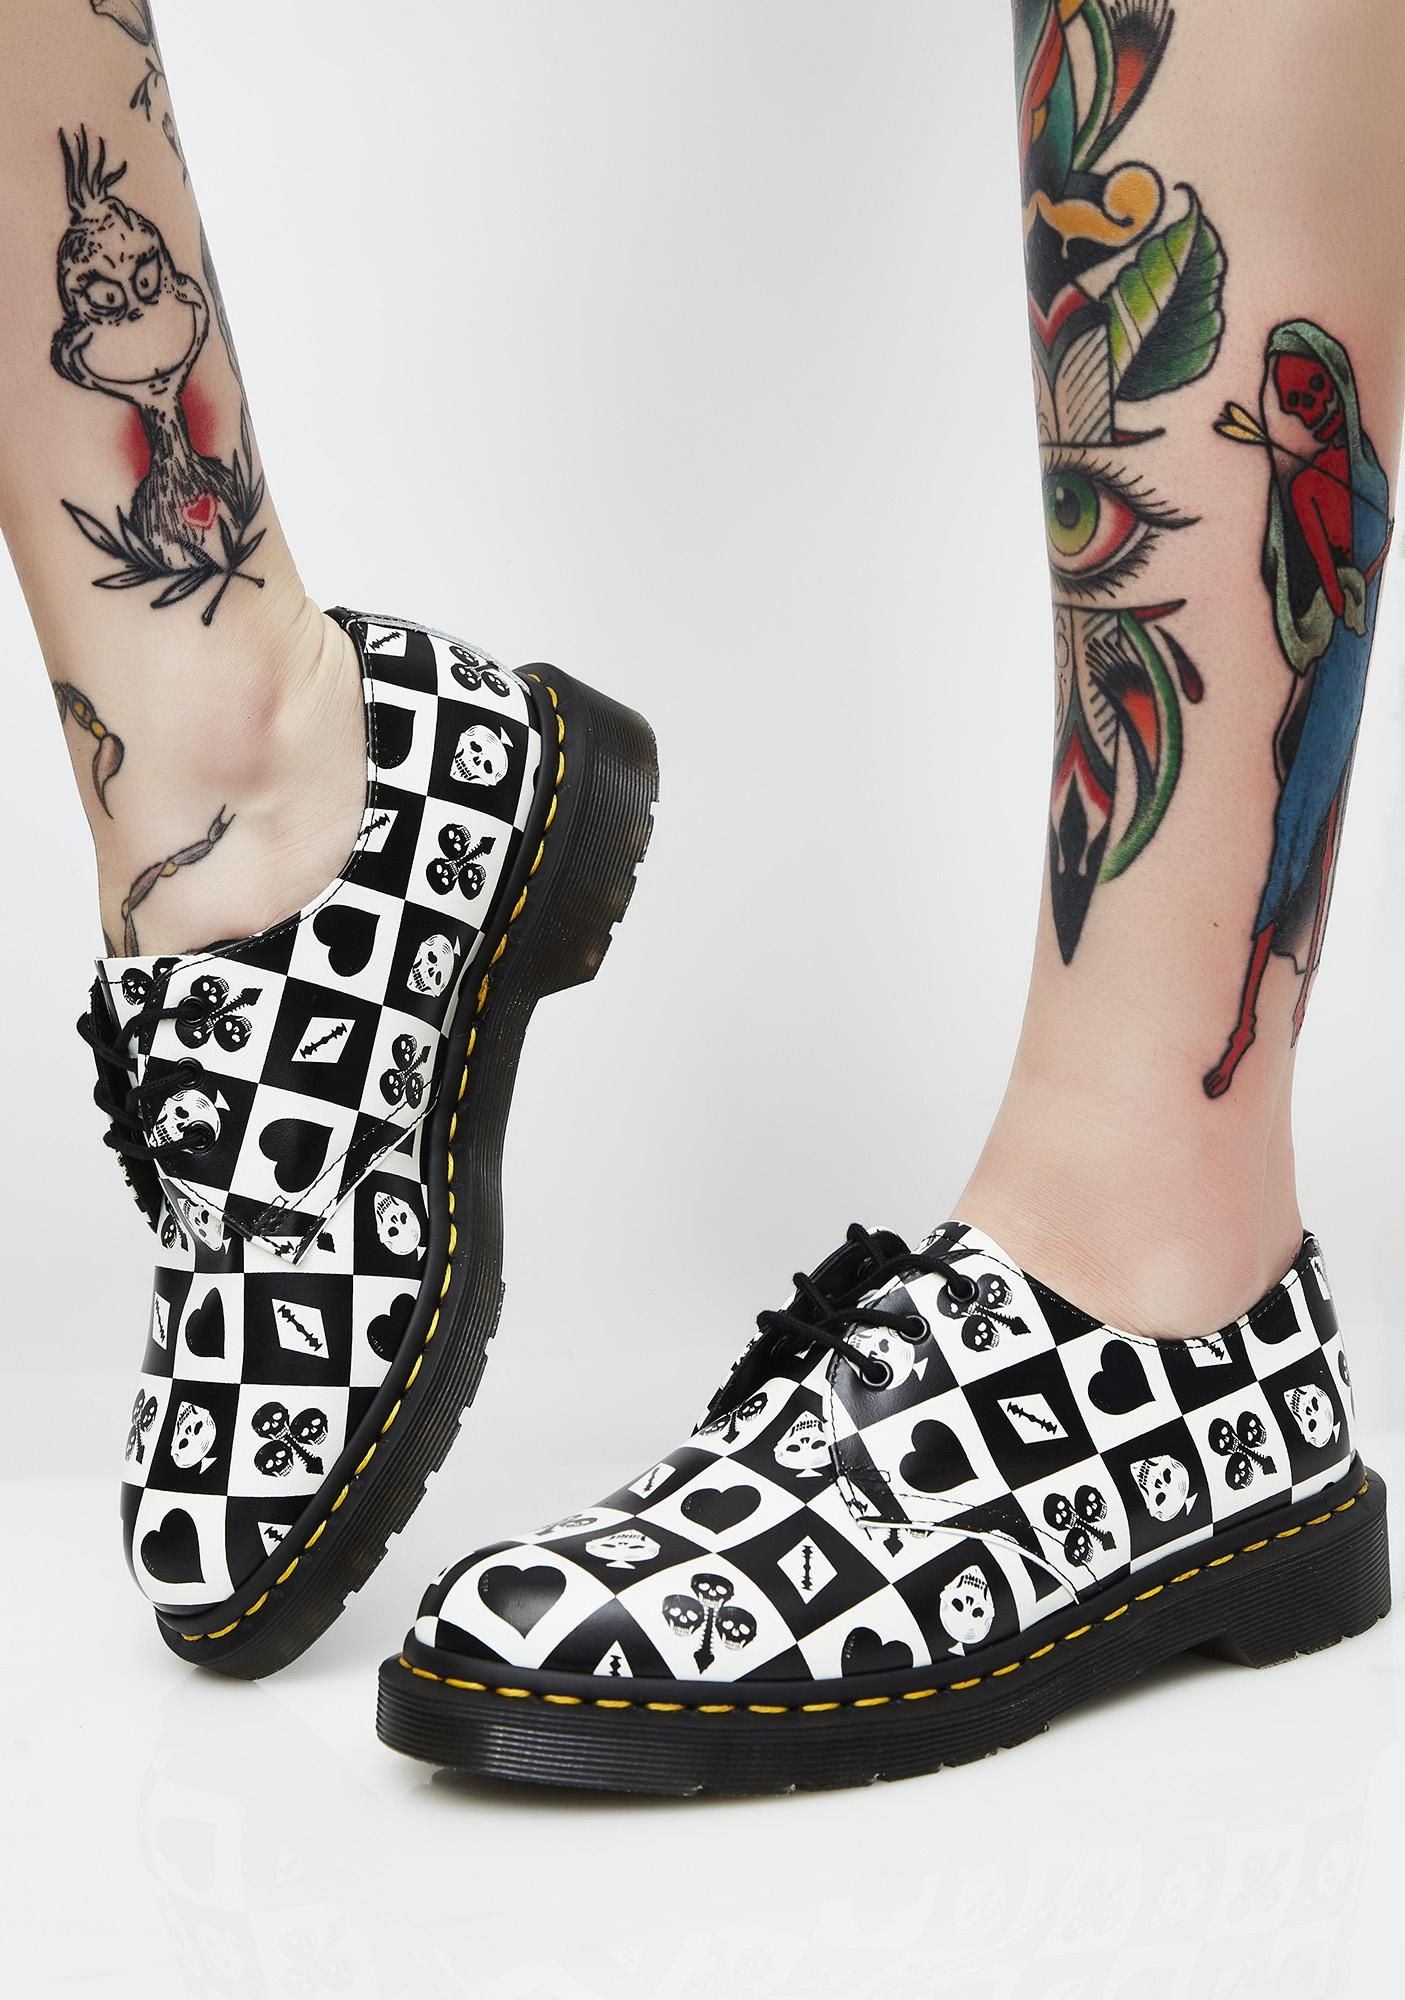 Dr. Martens 1461 Playing Card Flat Shoes